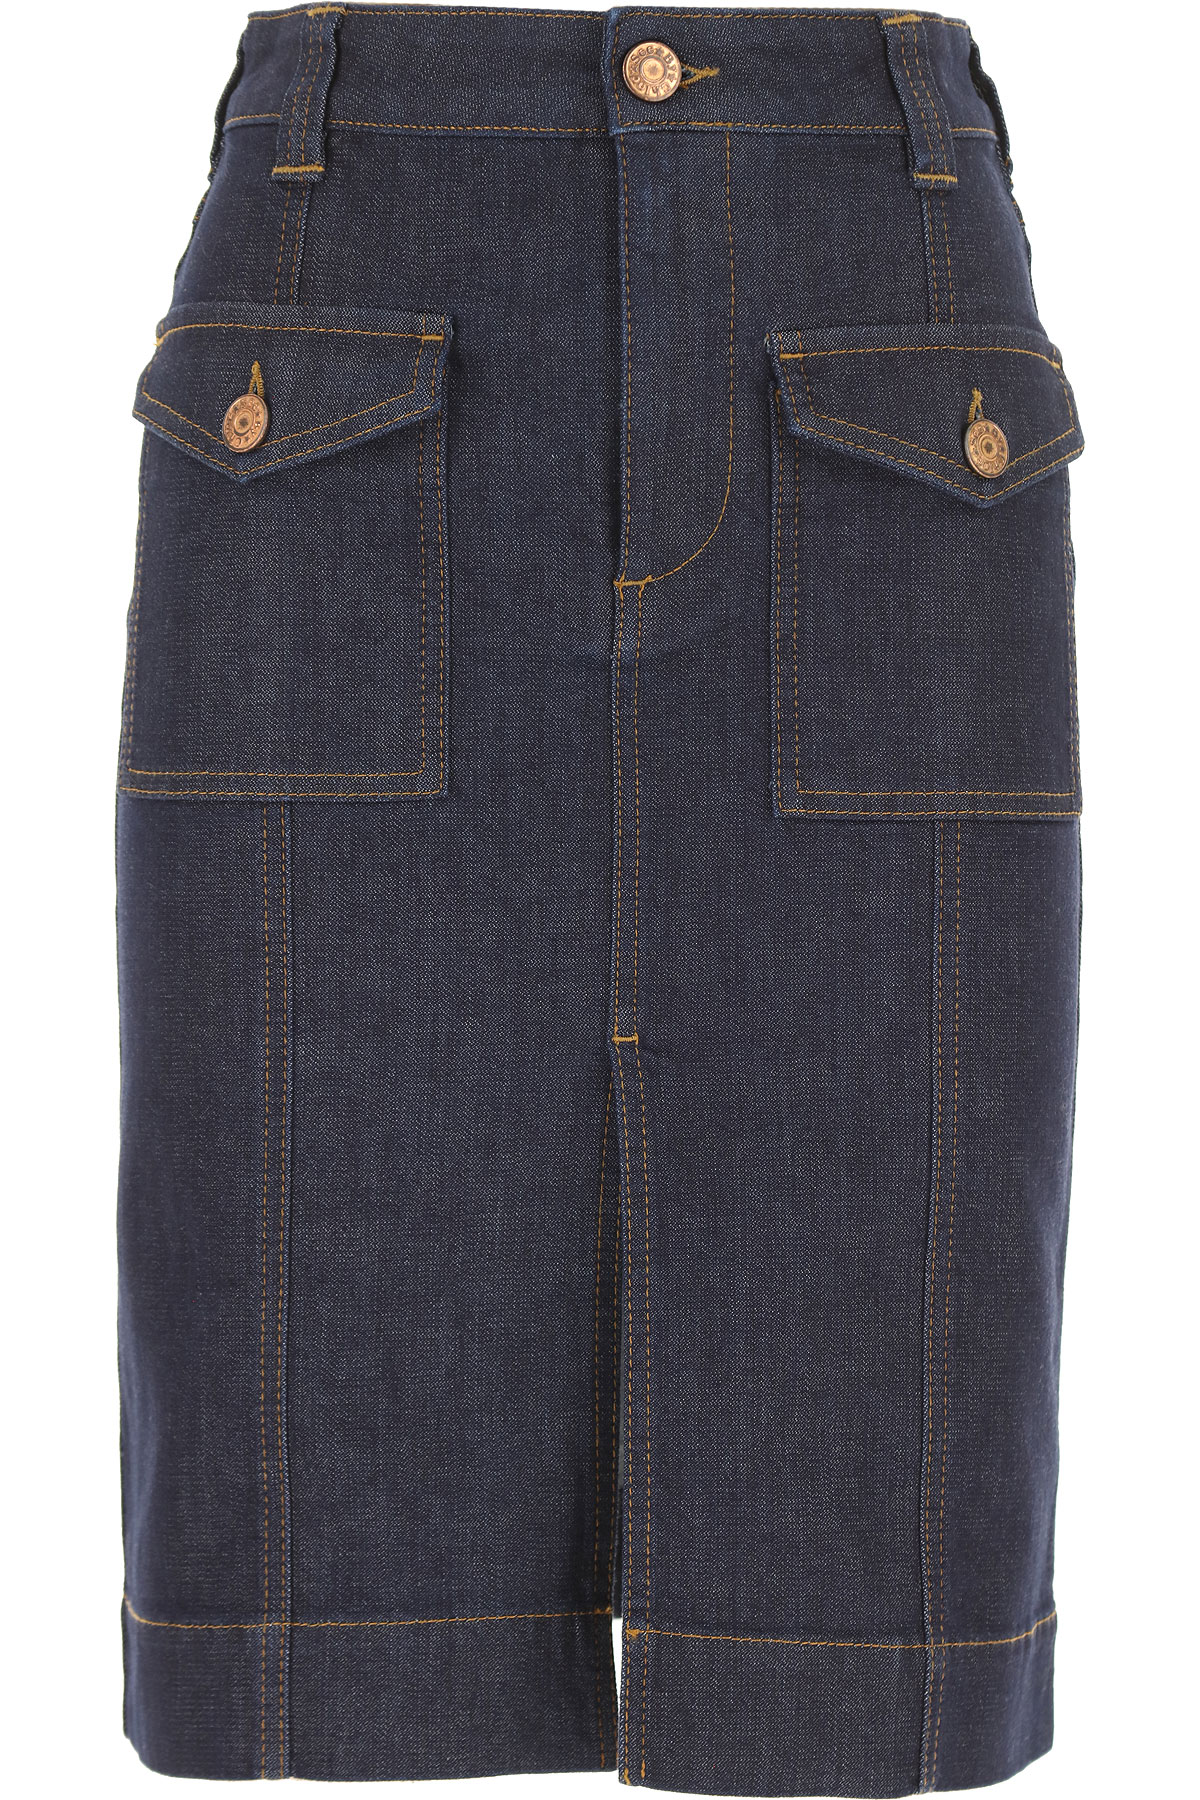 See By Chloe Skirt for Women On Sale, Denim, Cotton, 2019, 34